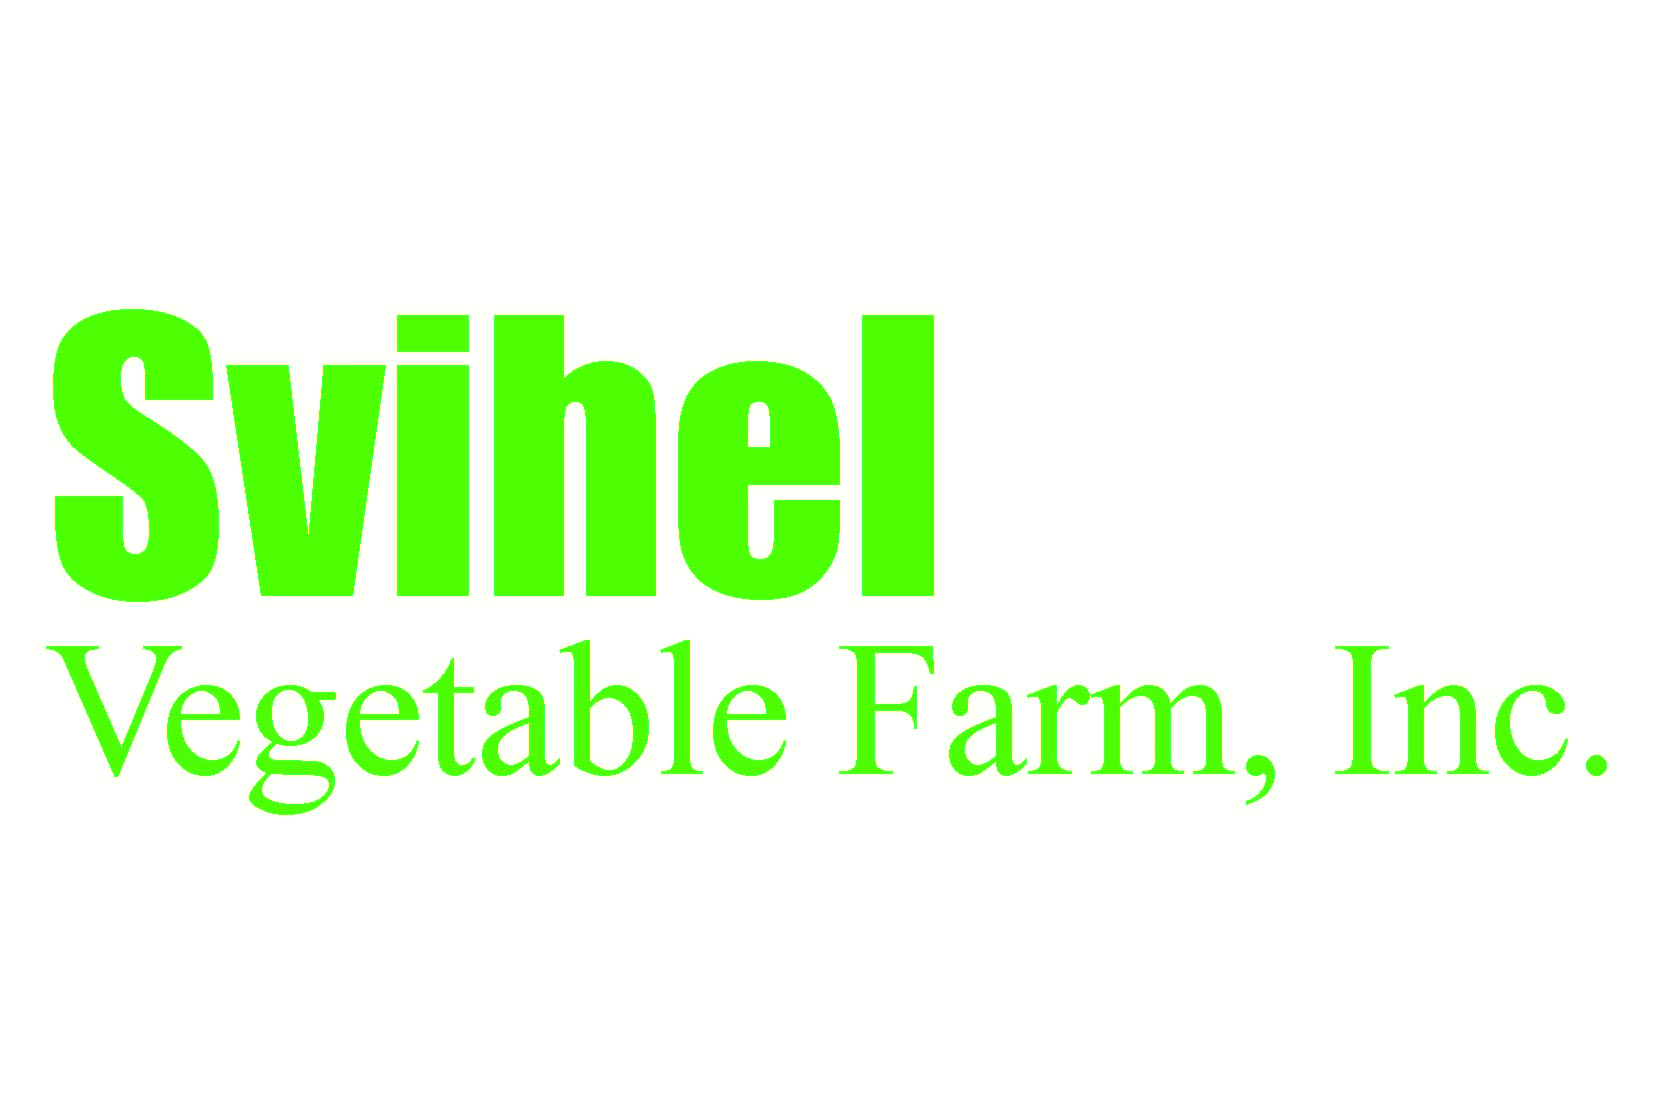 Svihel Vegetable Farm logo